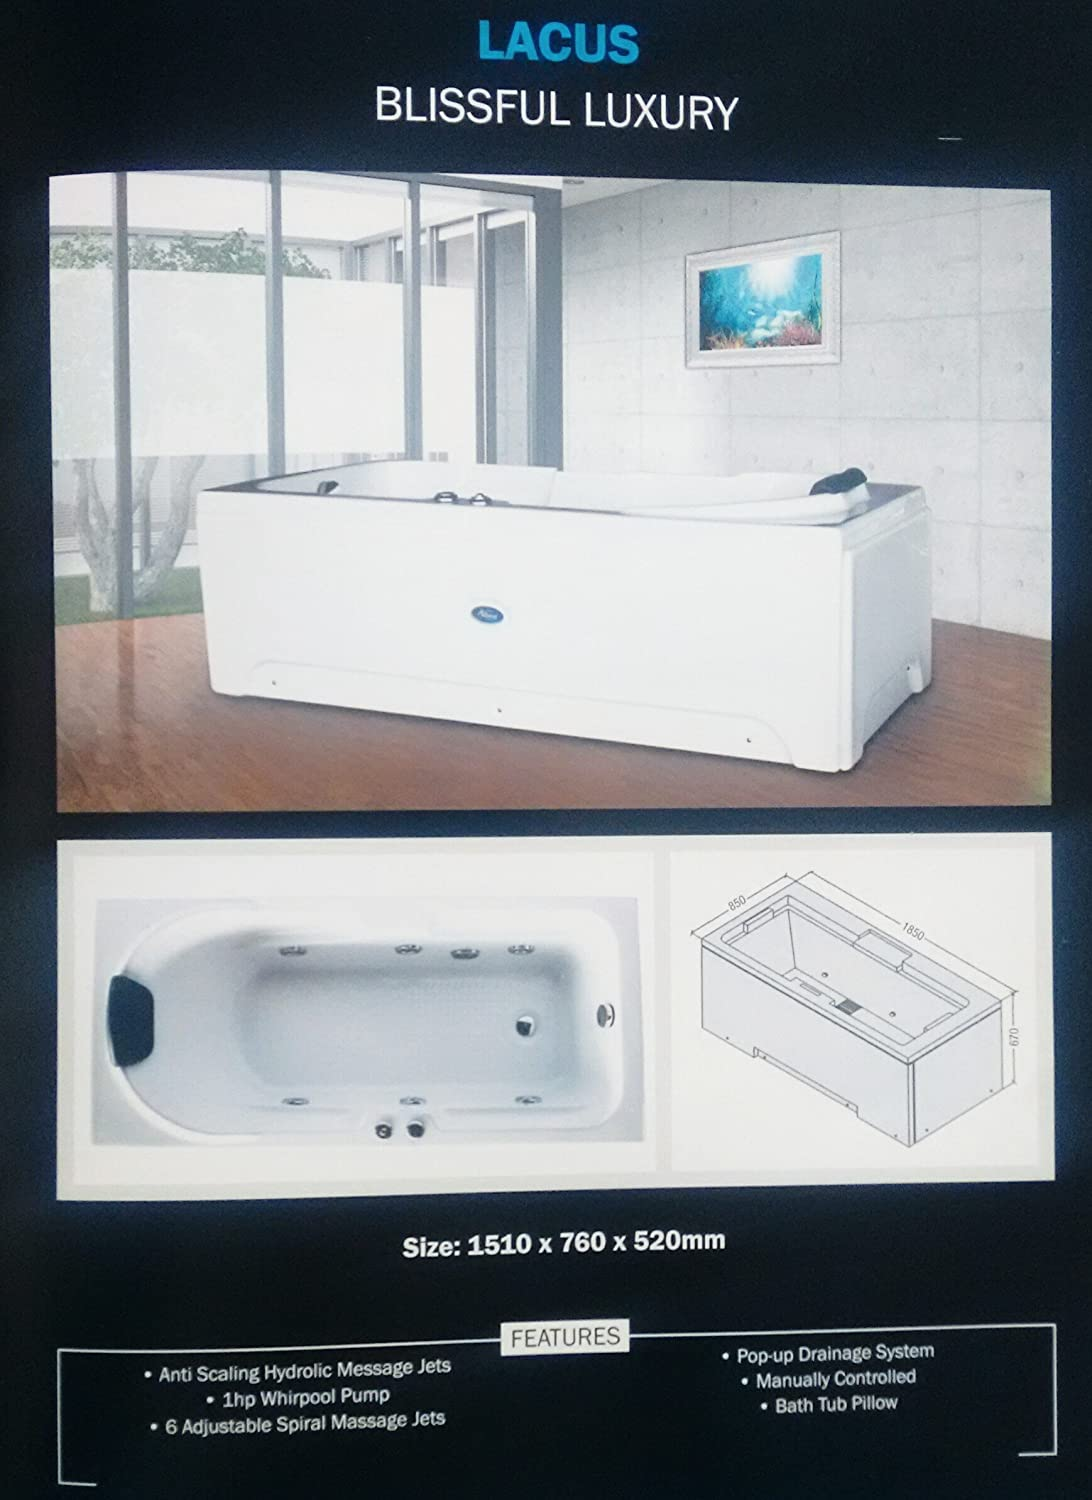 Buy Glorious Jacuzzi Bathtub Size 5 x 2.5 Online at Low Prices in ...